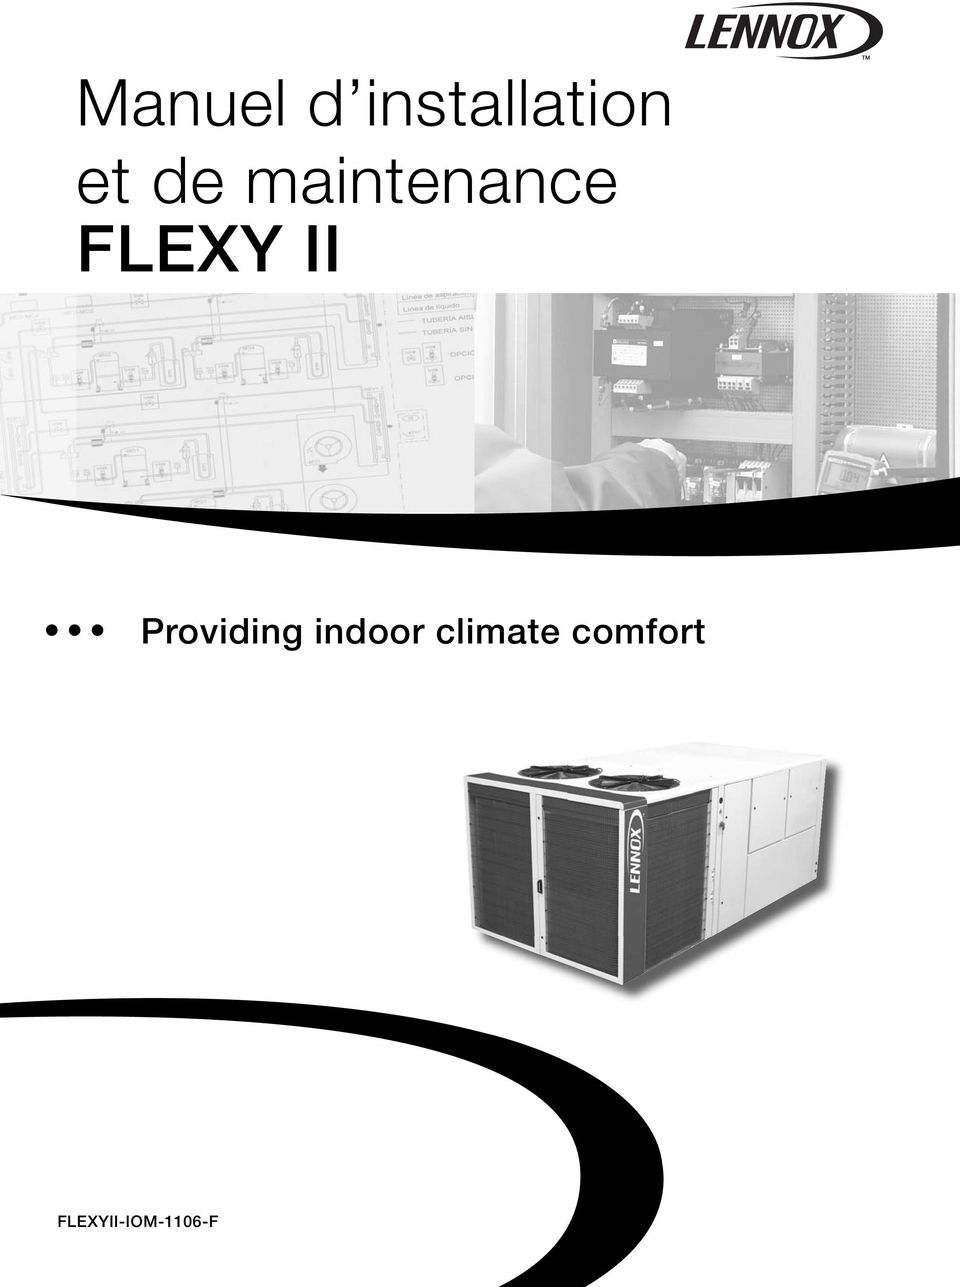 Providing indoor climate